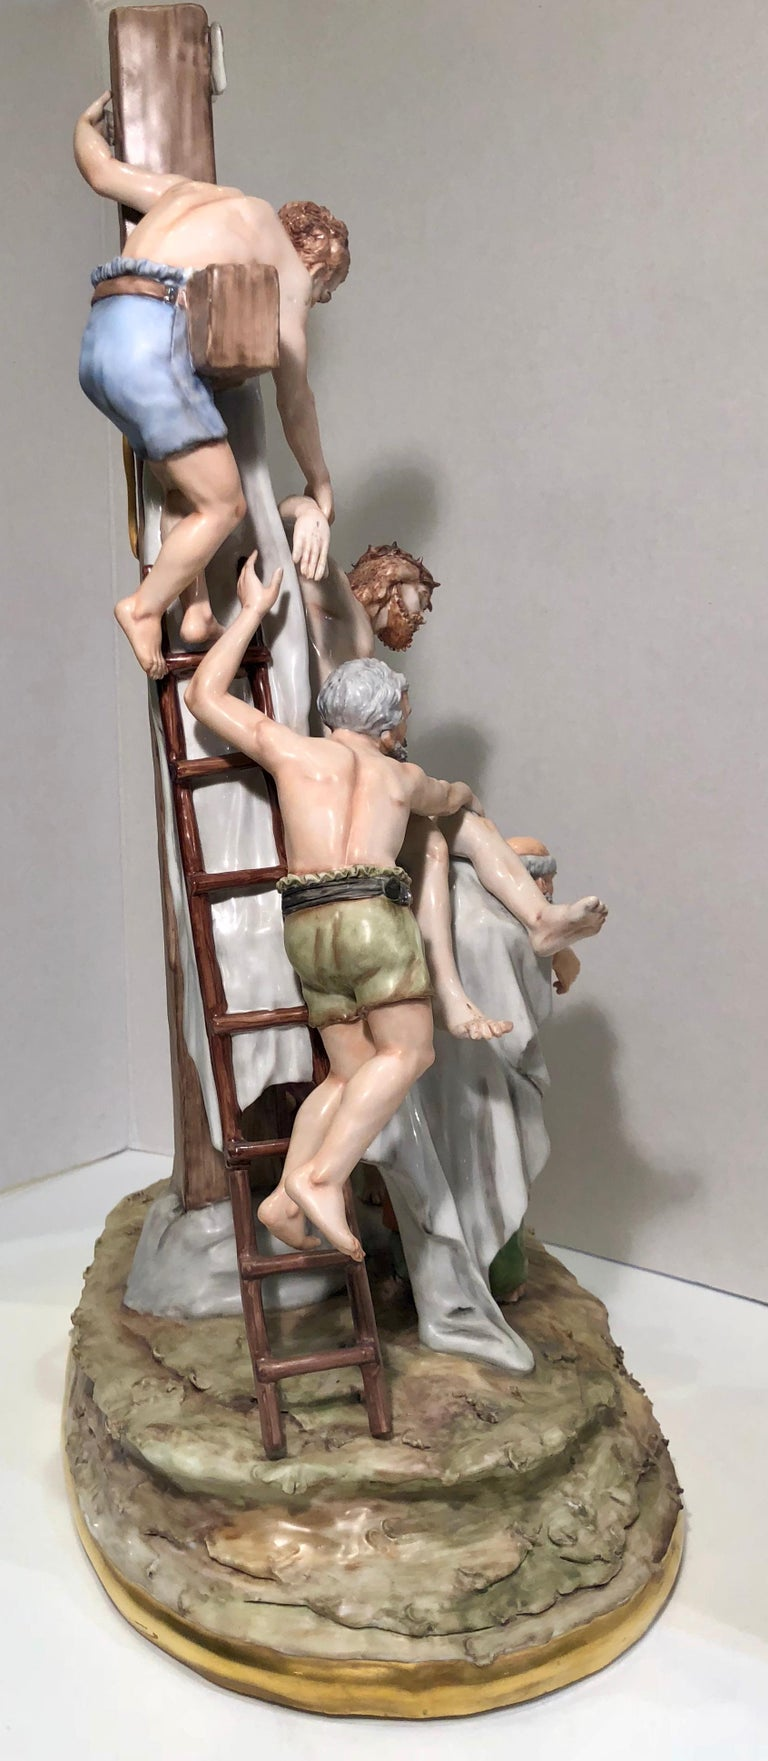 Fired Sitzendorf Germany 13th Station of the Cross Museum Quality Porcelain Scene For Sale